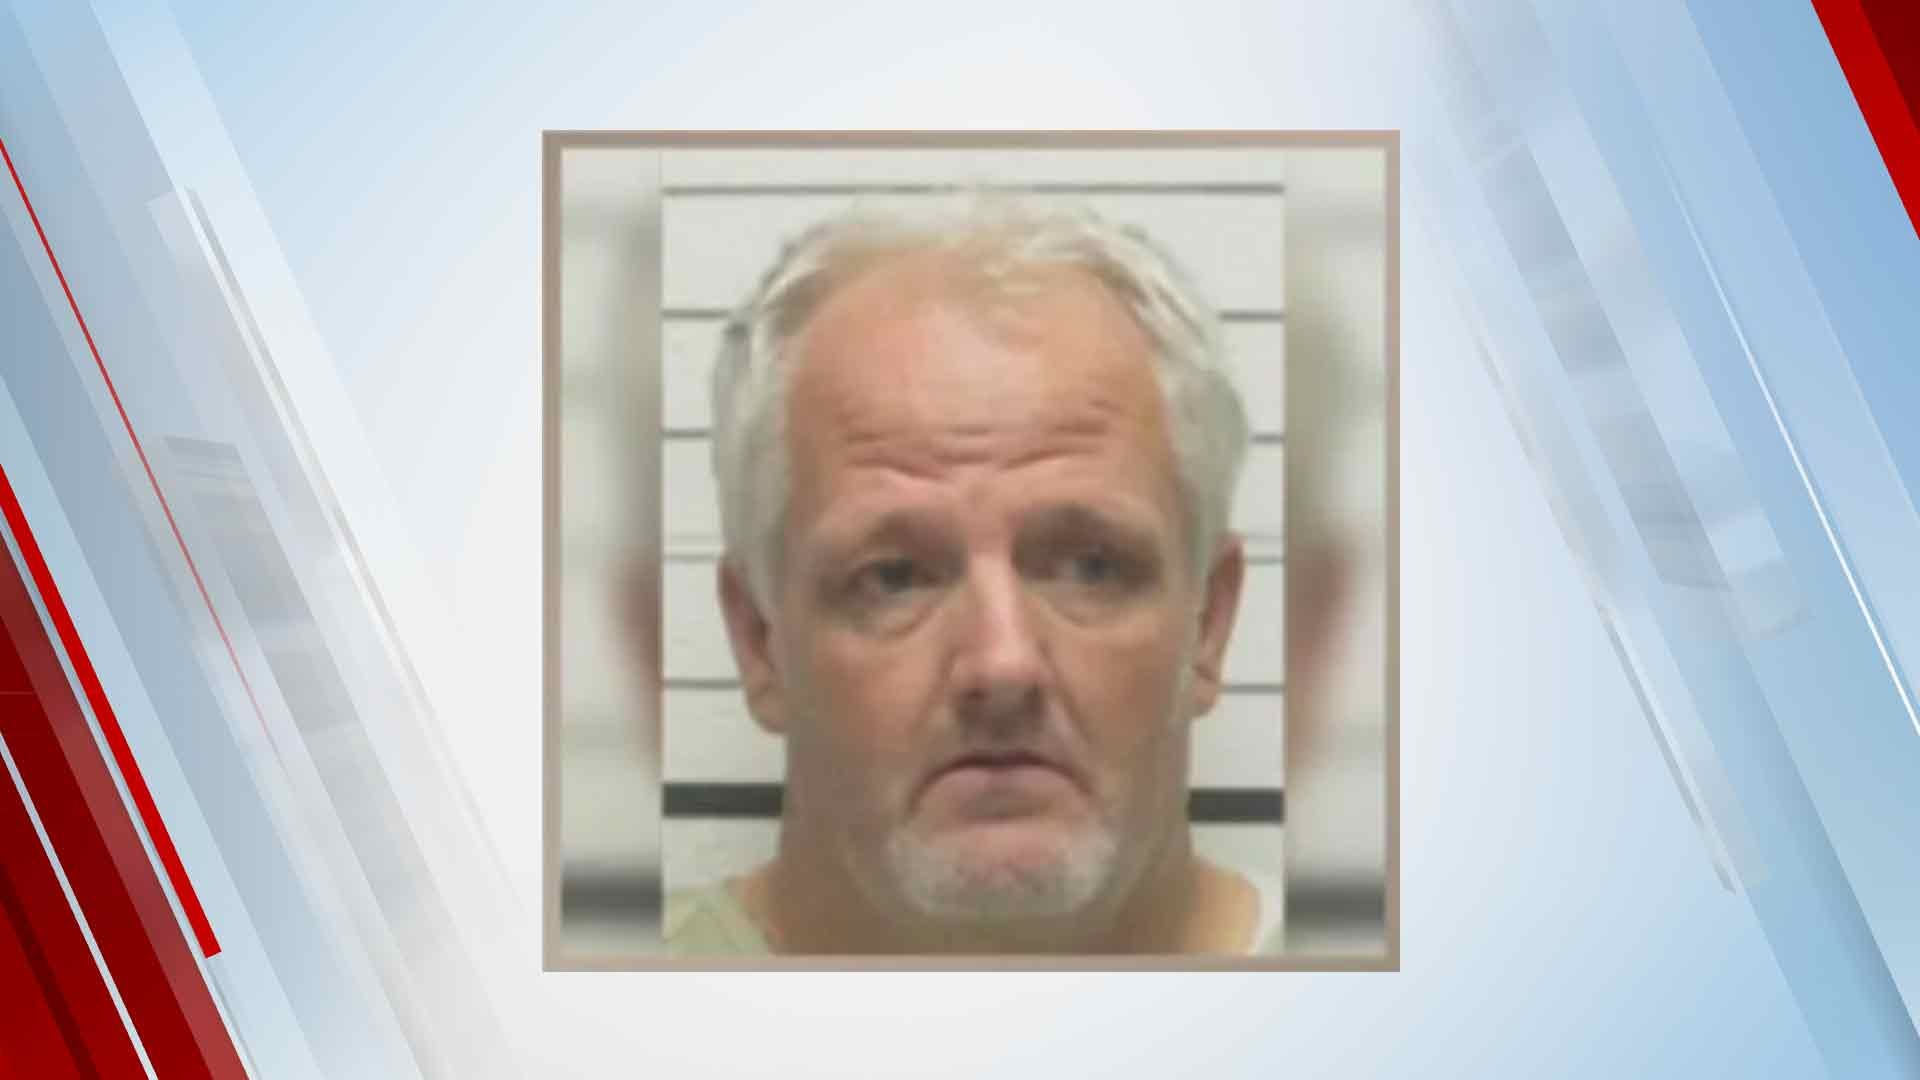 U.S. Marshals Most Wanted Suspect In Custody Following Creek County Pursuit